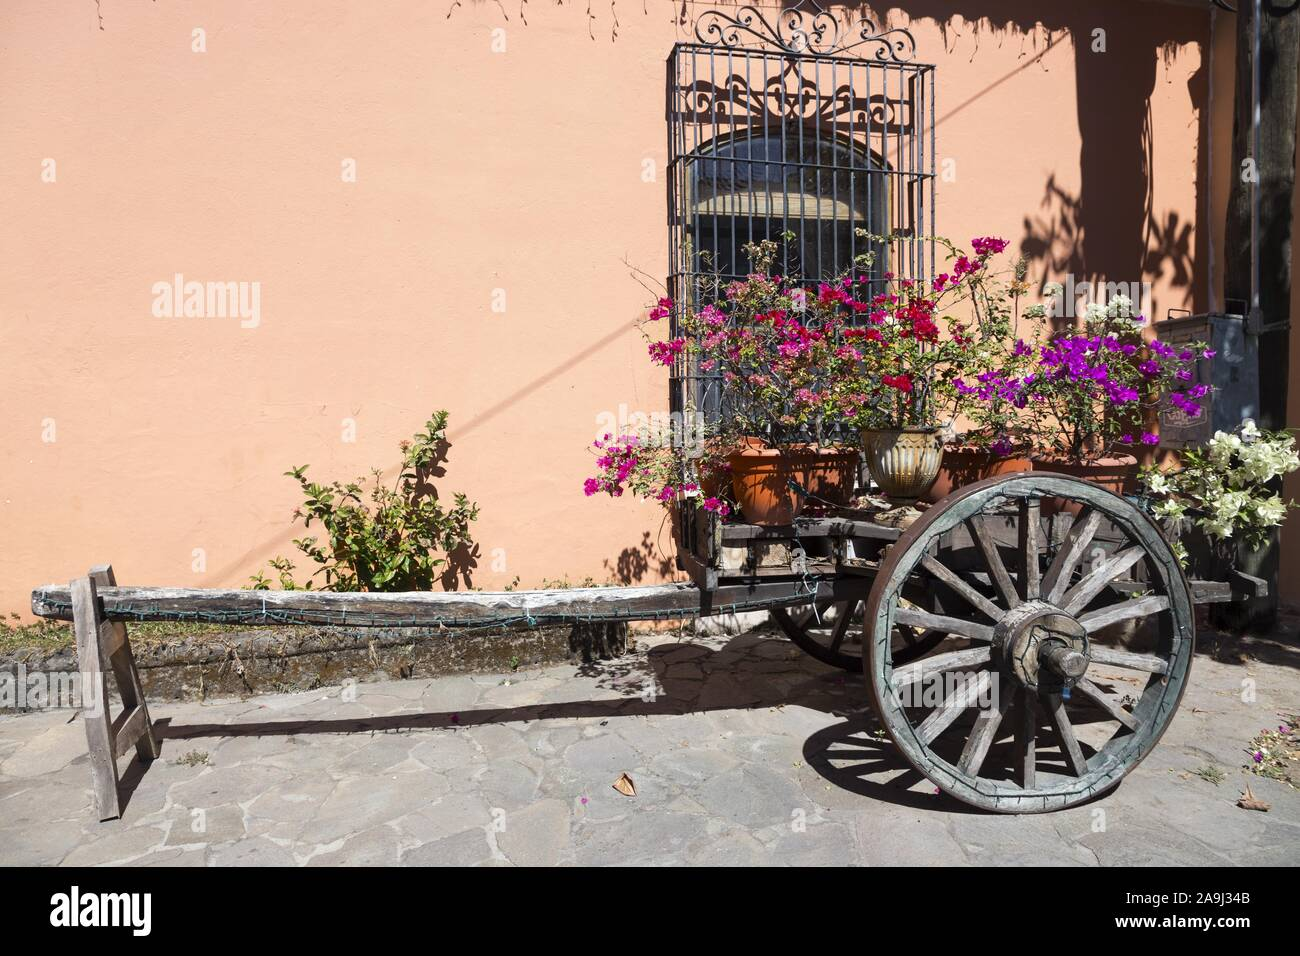 old-wooden-cart-with-wild-roses-flower-b